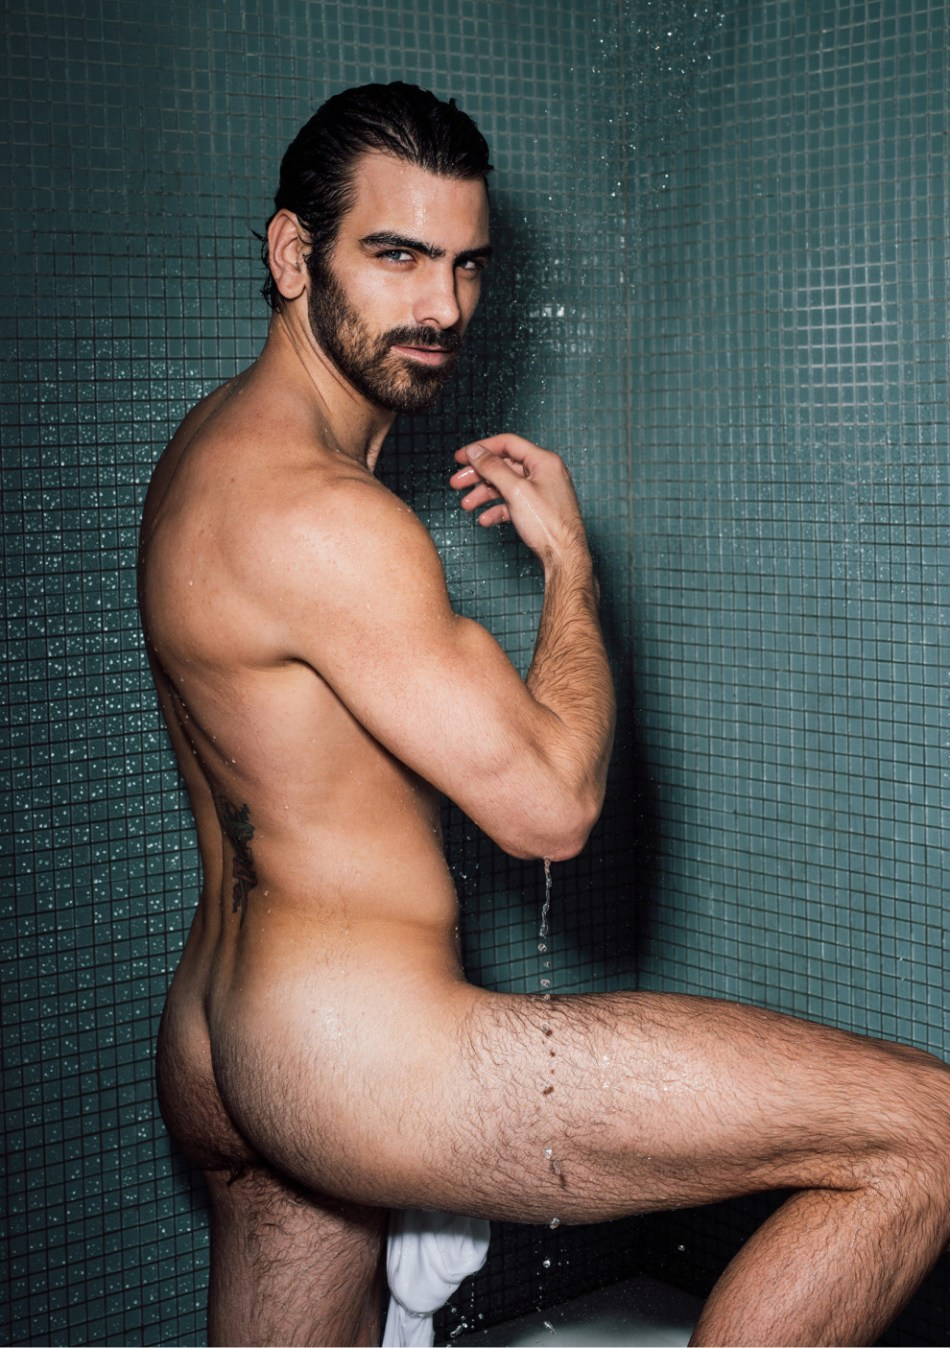 Nyle DiMarco by Taylor Miller for Buzzfeed9